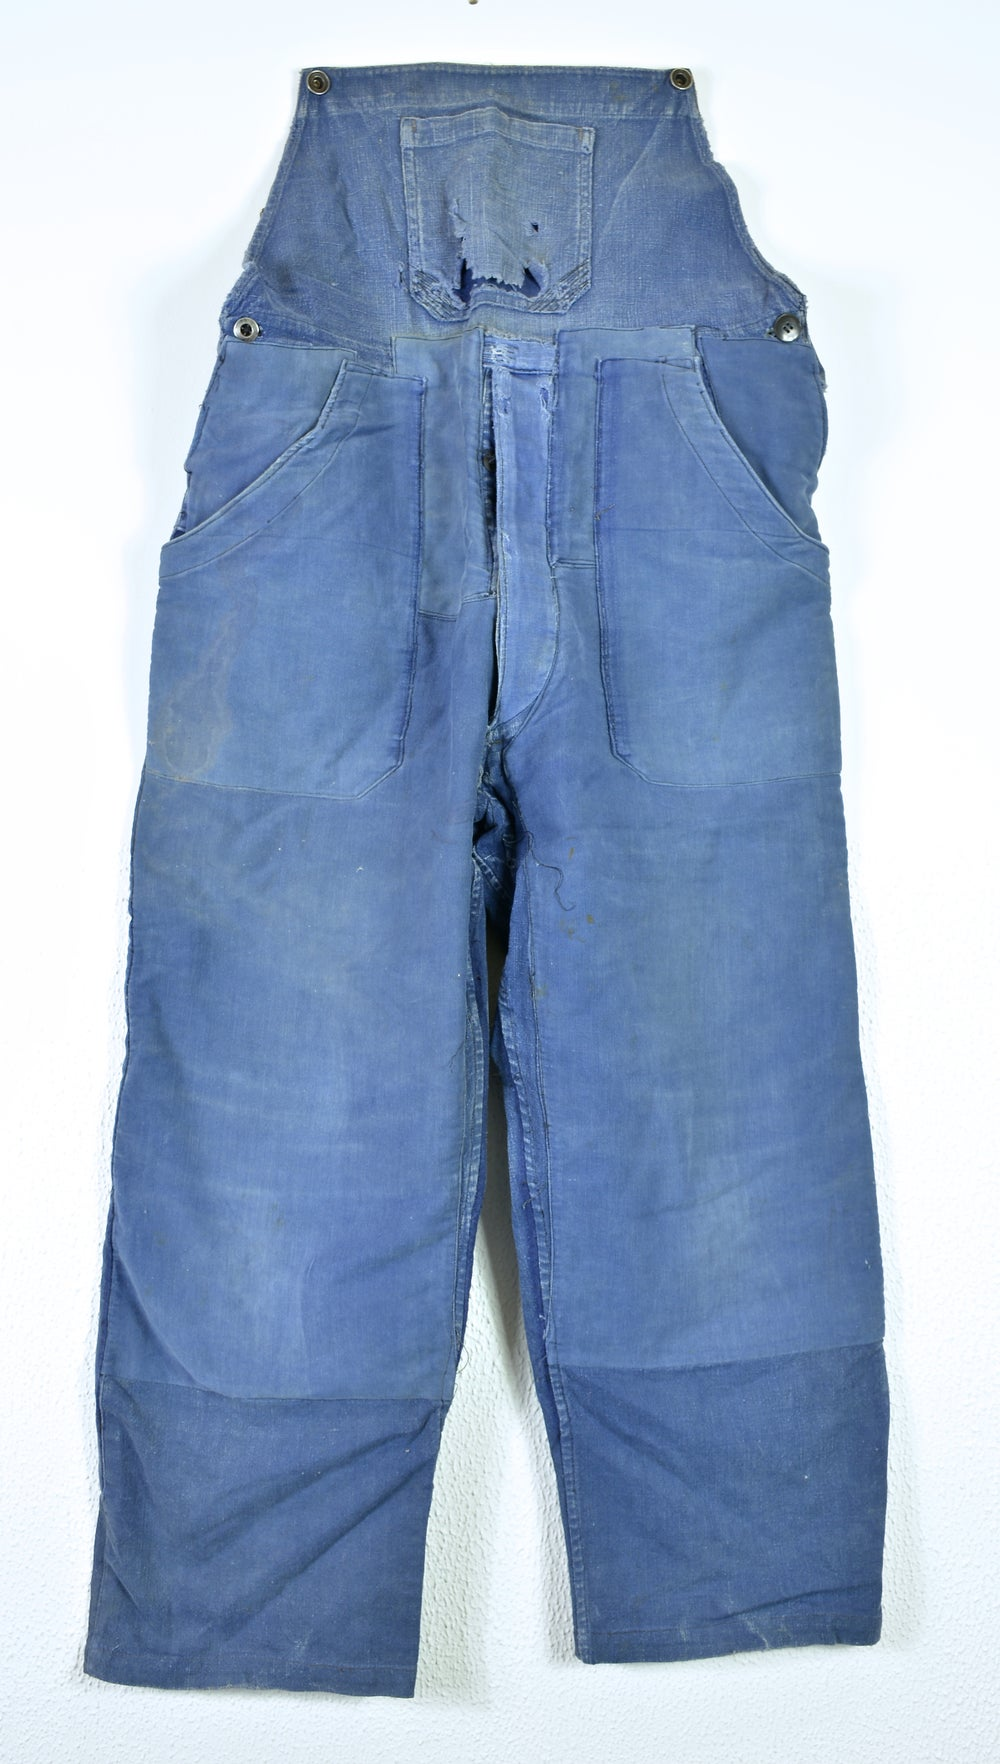 Image of 1930'S FRENCH INDIGO LINEN OVERALL FADED & MOLESKIN PATCHES